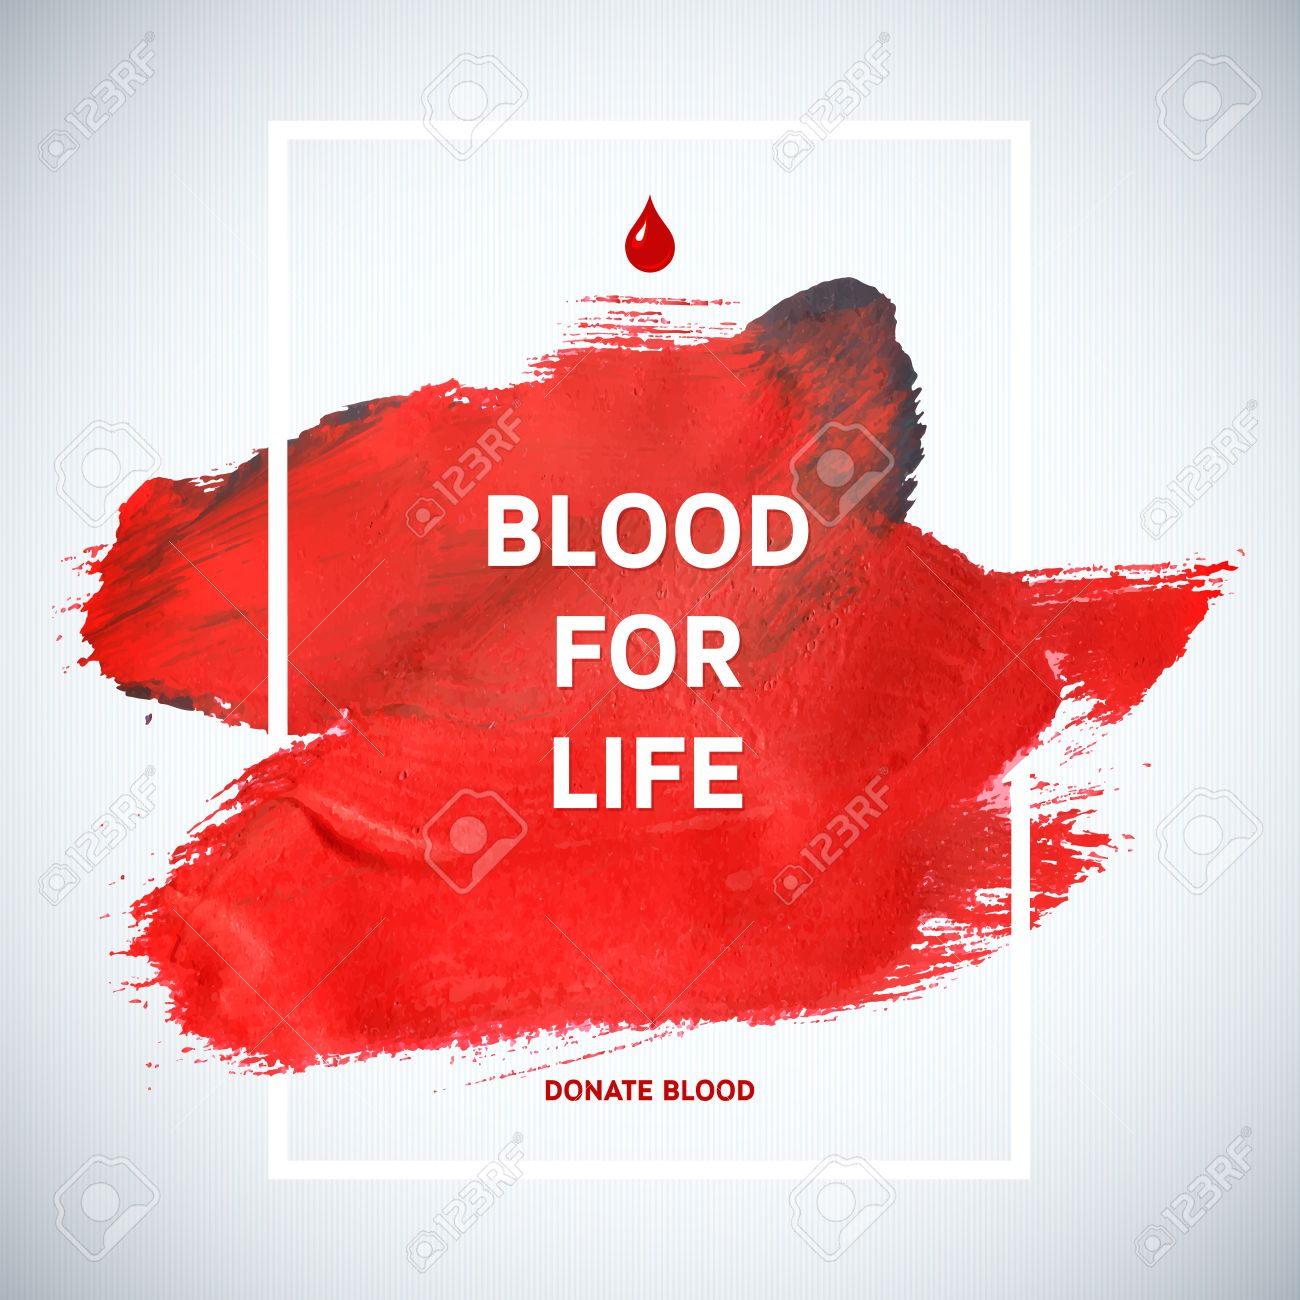 Poster design on blood donation - Creative Blood Donor Day Motivation Information Donor Poster Blood Donation World Blood Donor Day